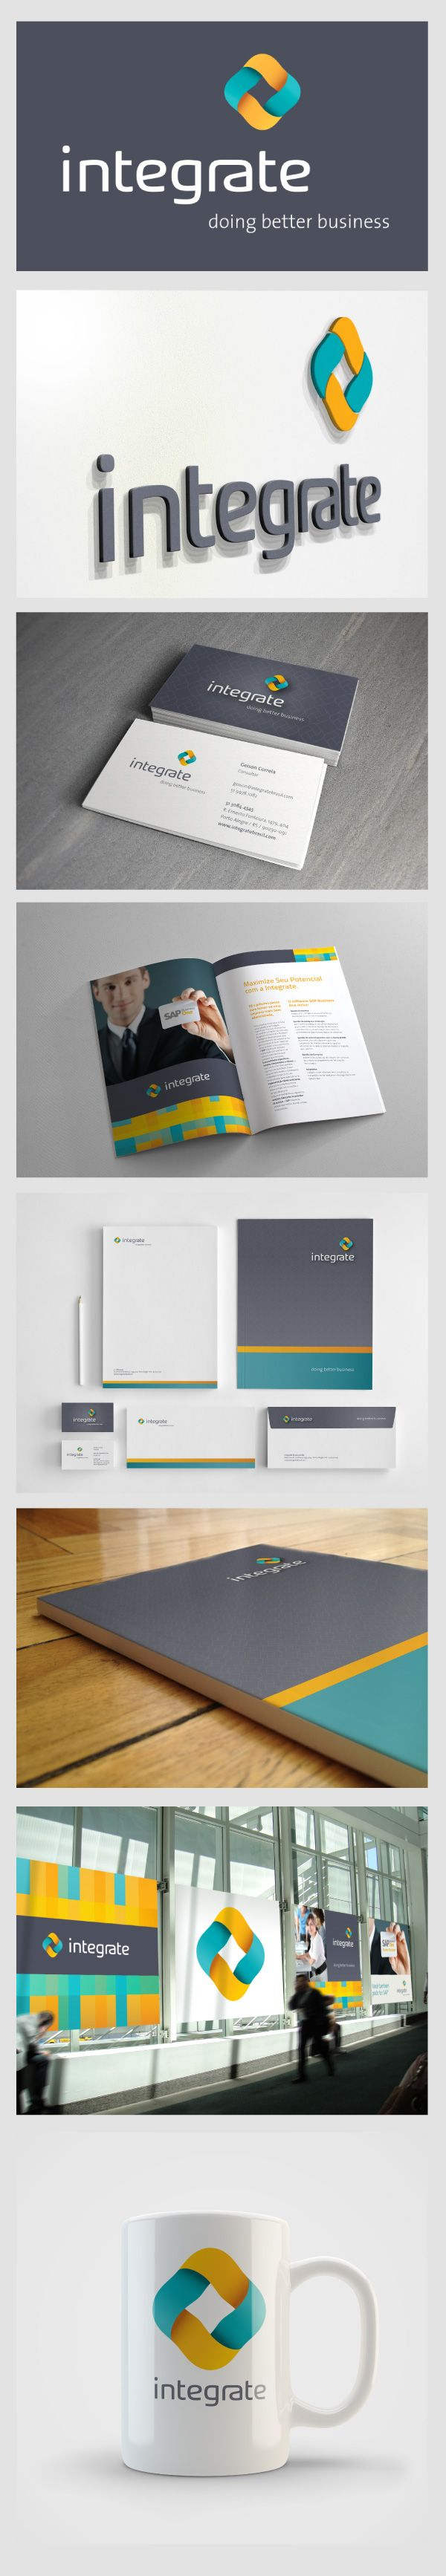 integrate branding # booklet design